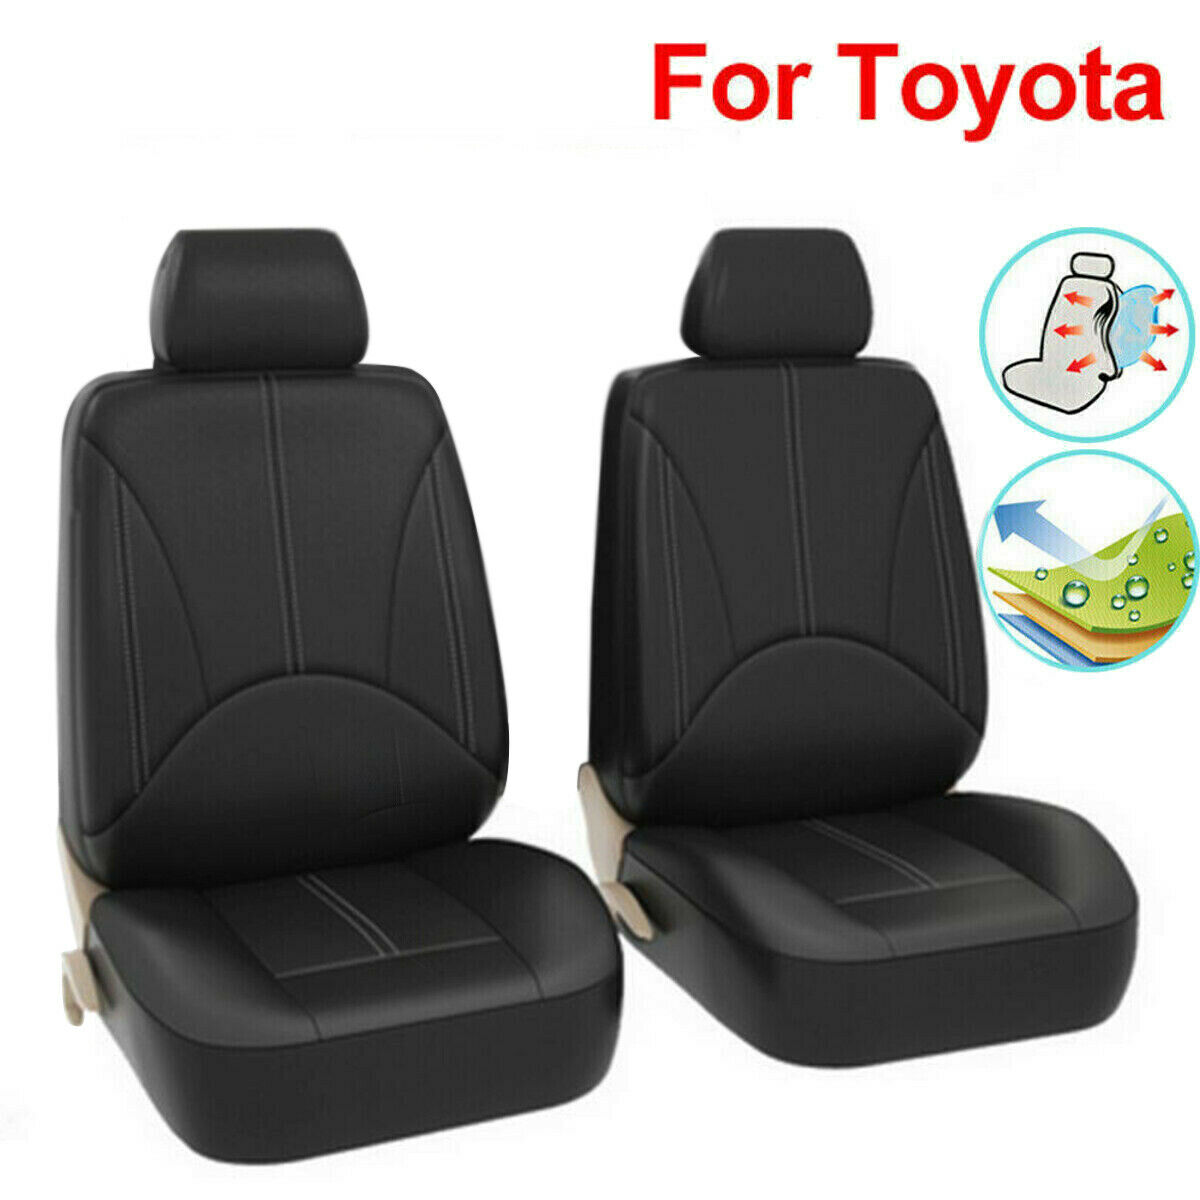 Auto Black Seat Cover Cushion Protector Set Accessories For Toyota RAV4 Corolla Headrest Front Seat Cover